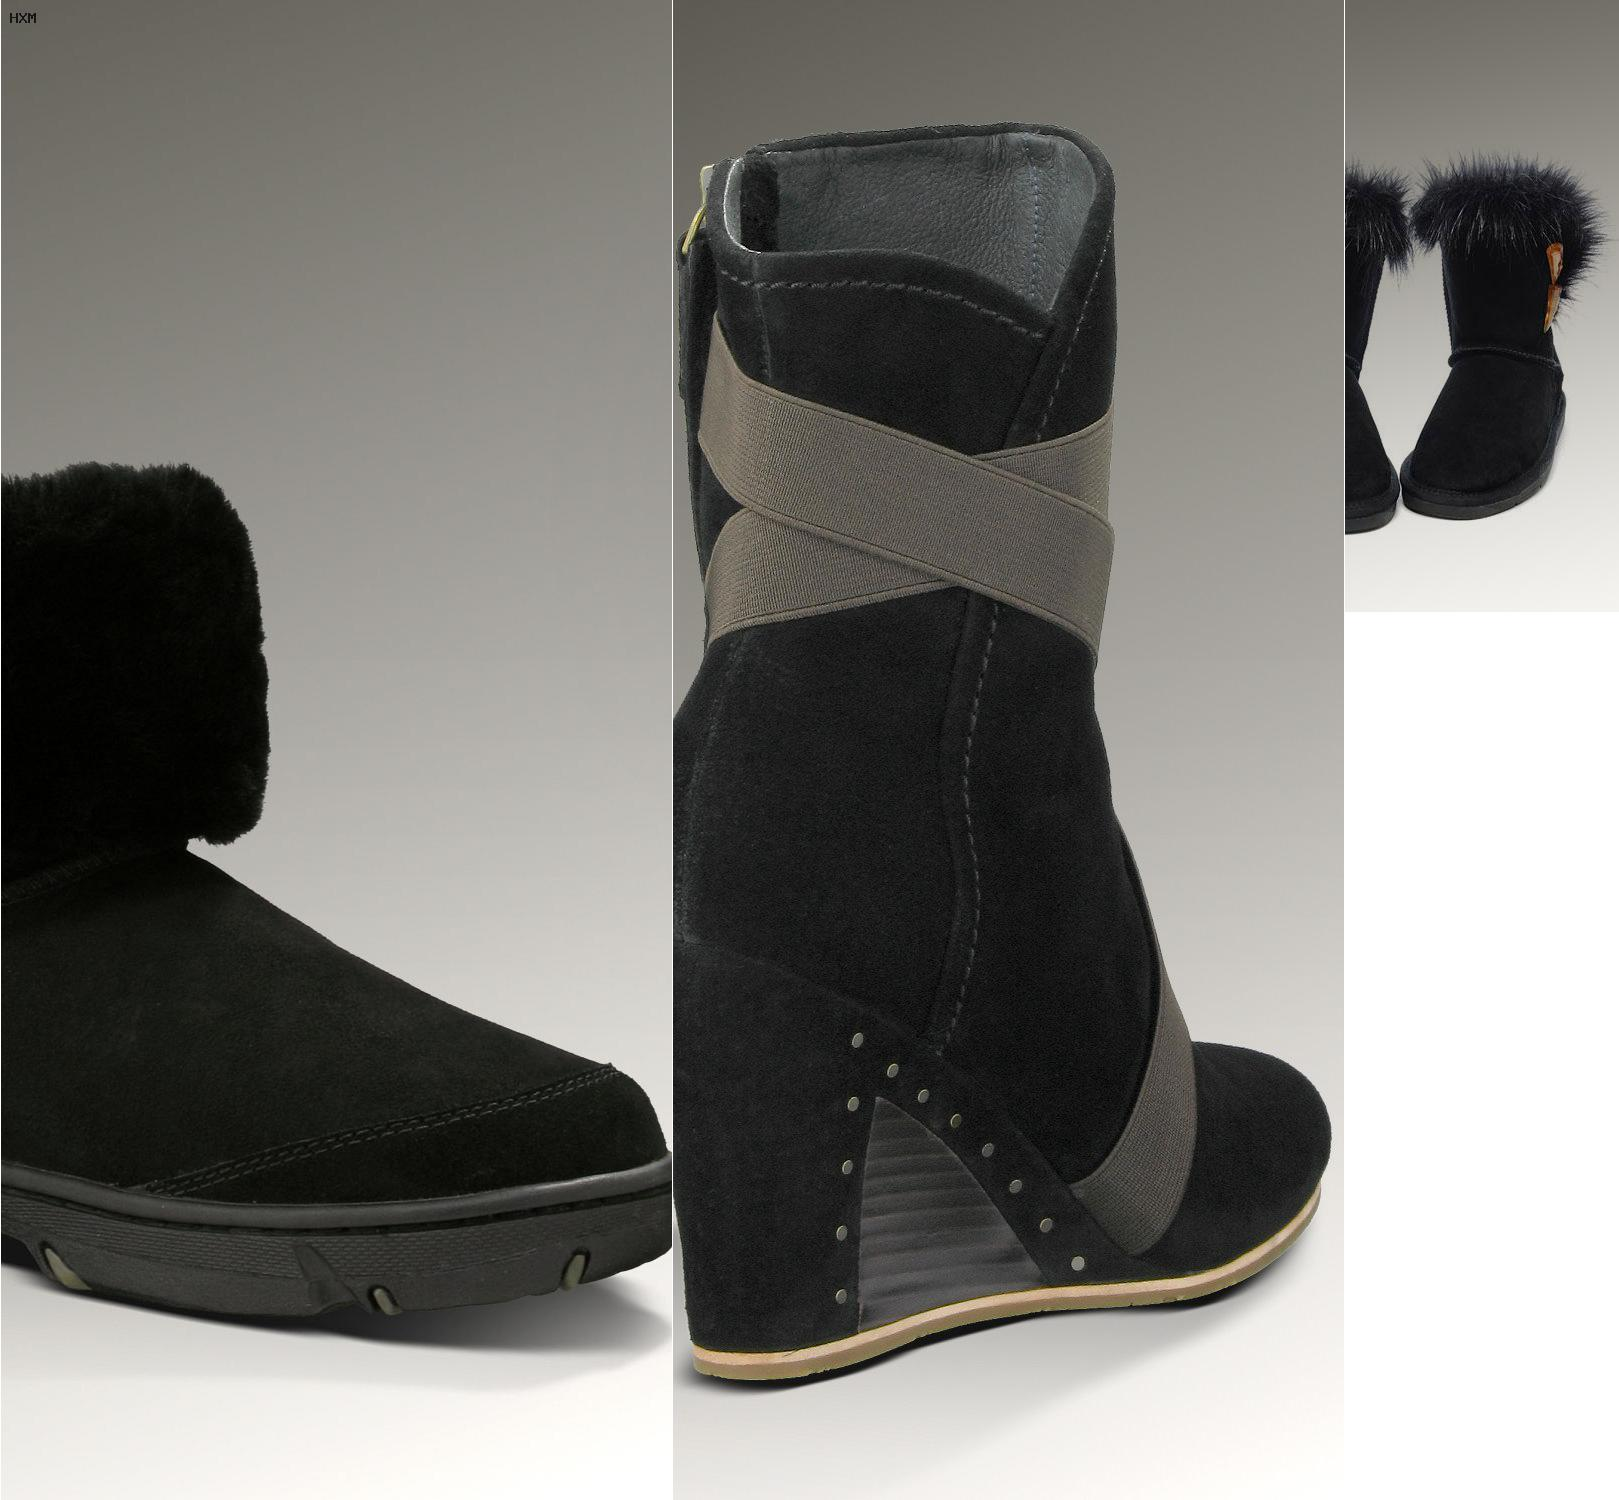 imitation uggs for toddlers